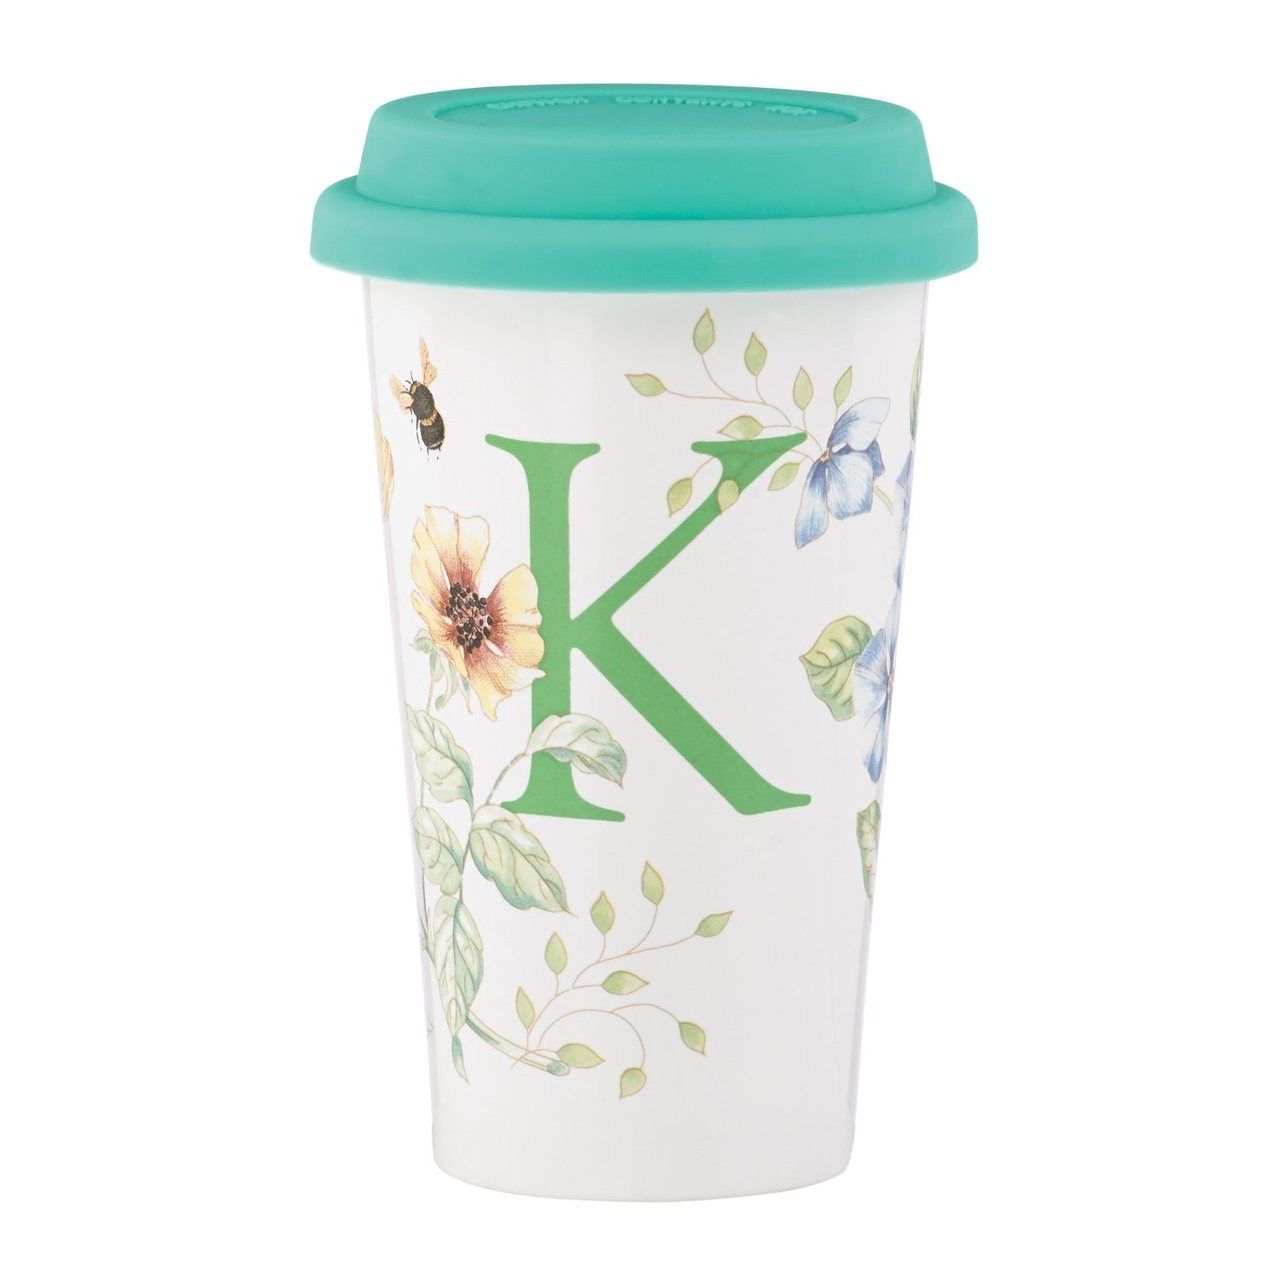 Lenox Butterfly Meadow Thermal Travel Mug K Our